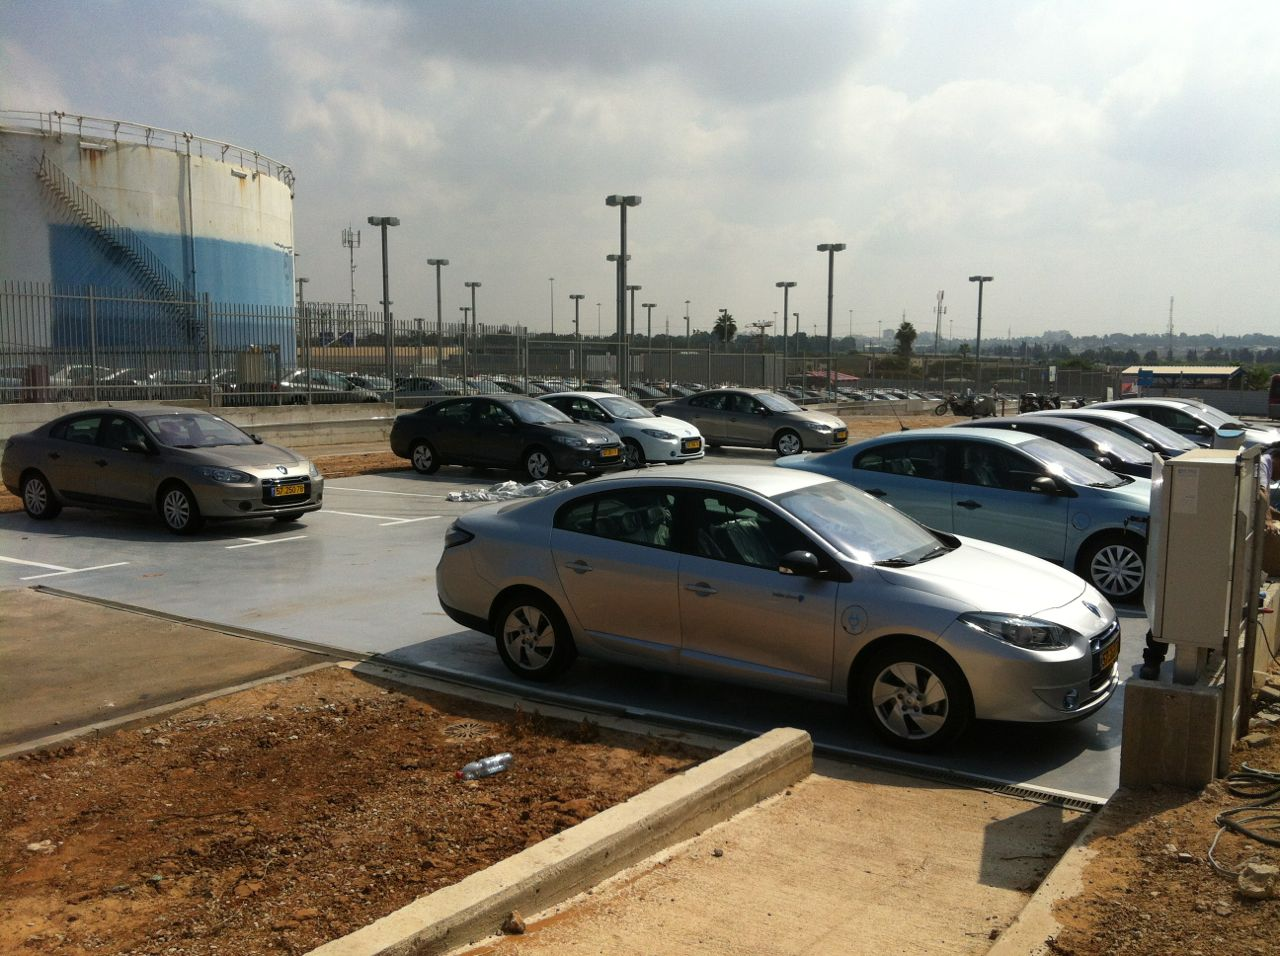 Israel plans to end internal combustion car sales by 2030